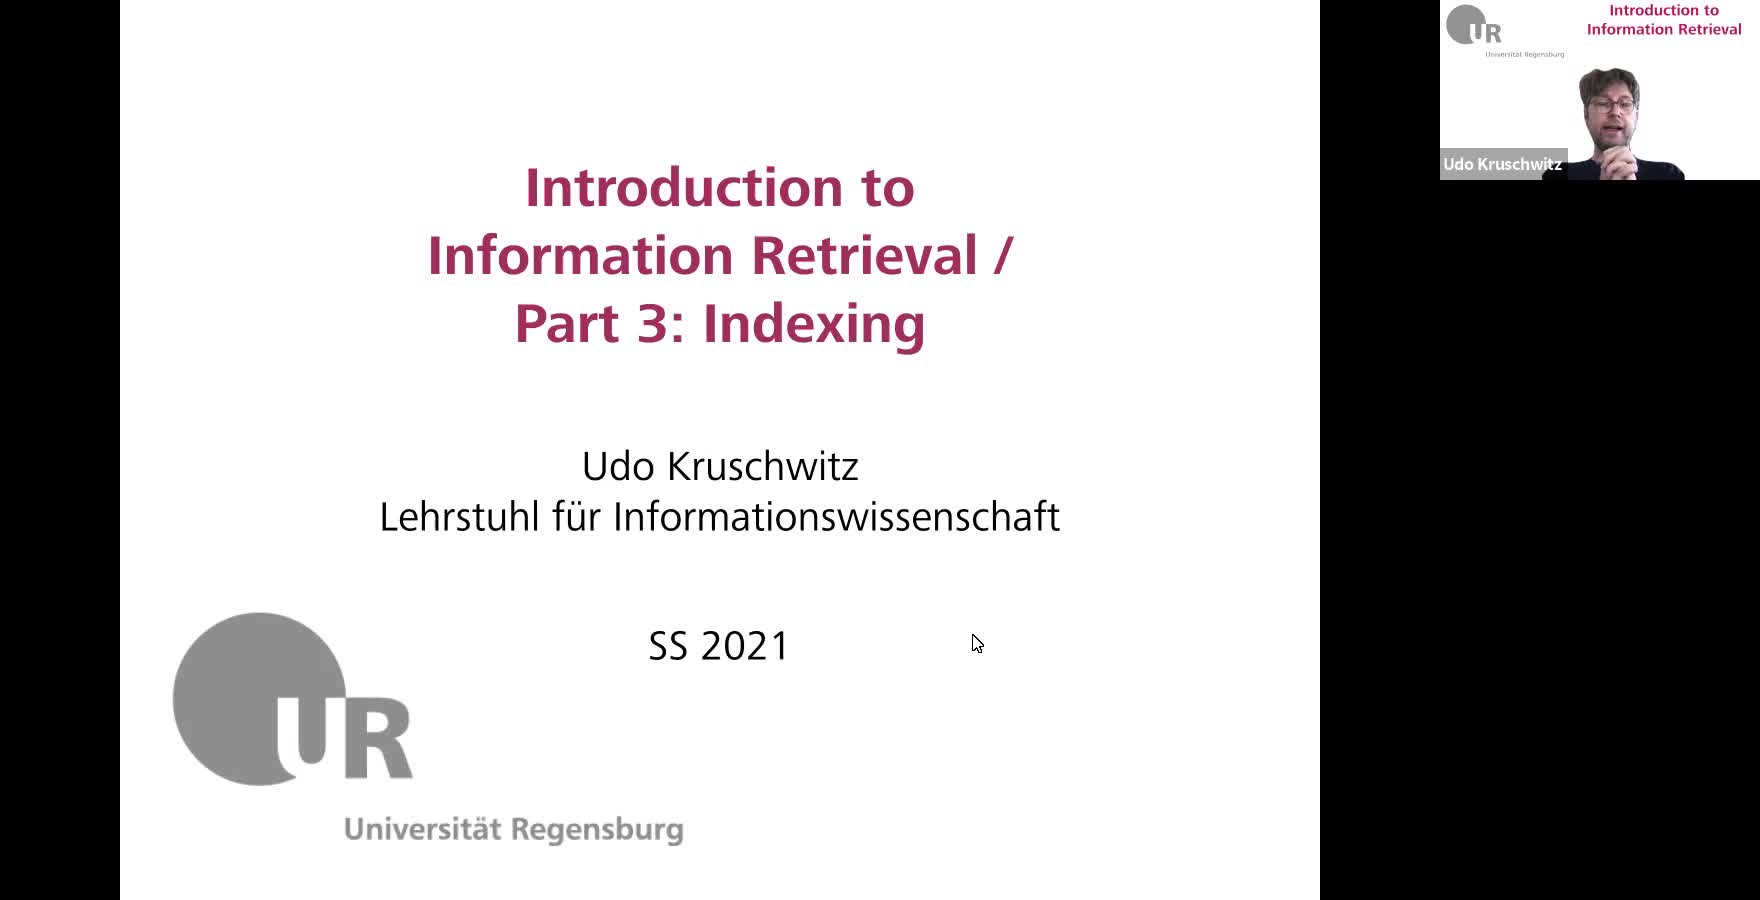 Introduction to Information Retrieval - Lecture 3 (Indexing)